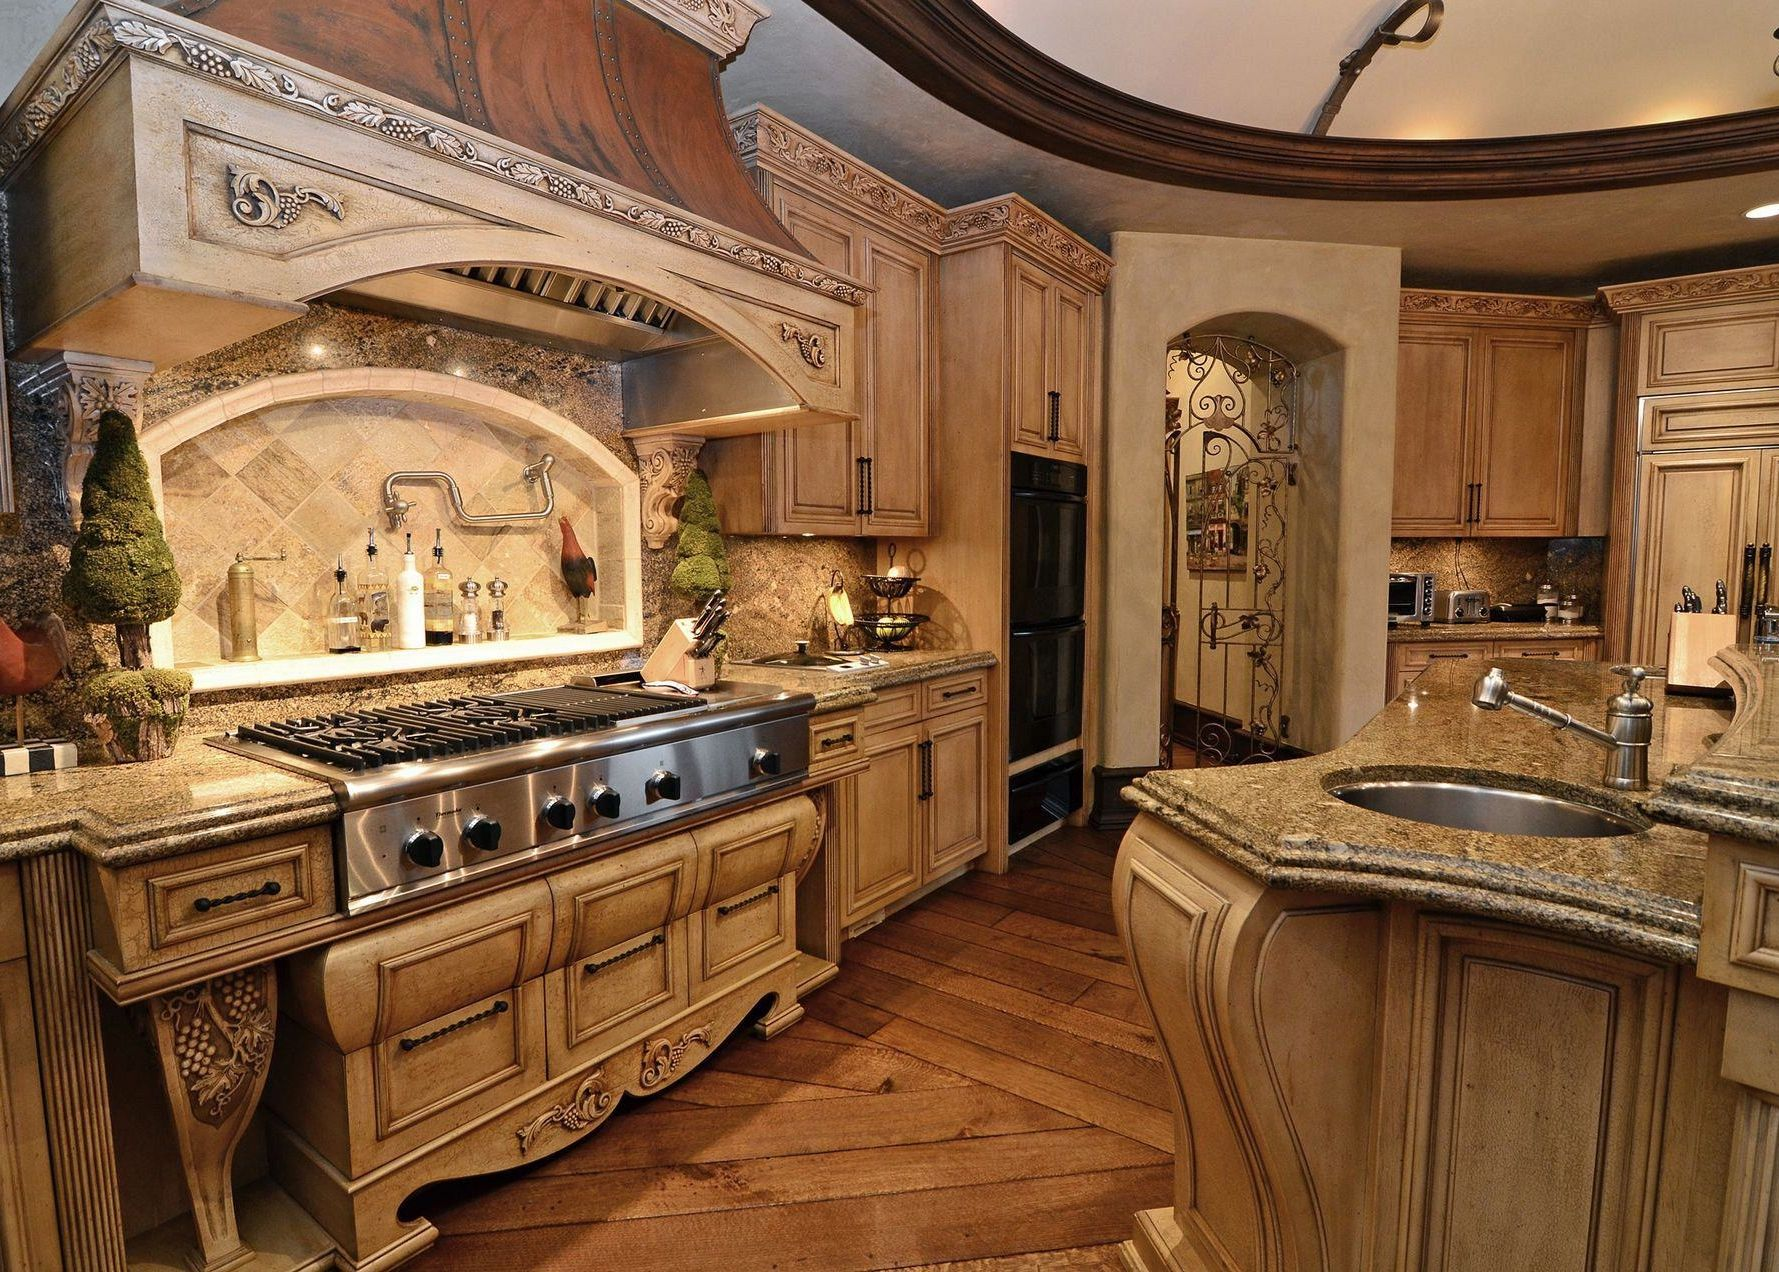 French Country Kitchen Designs Cabinet Refinishing Design Ideas And Decor From Simmons